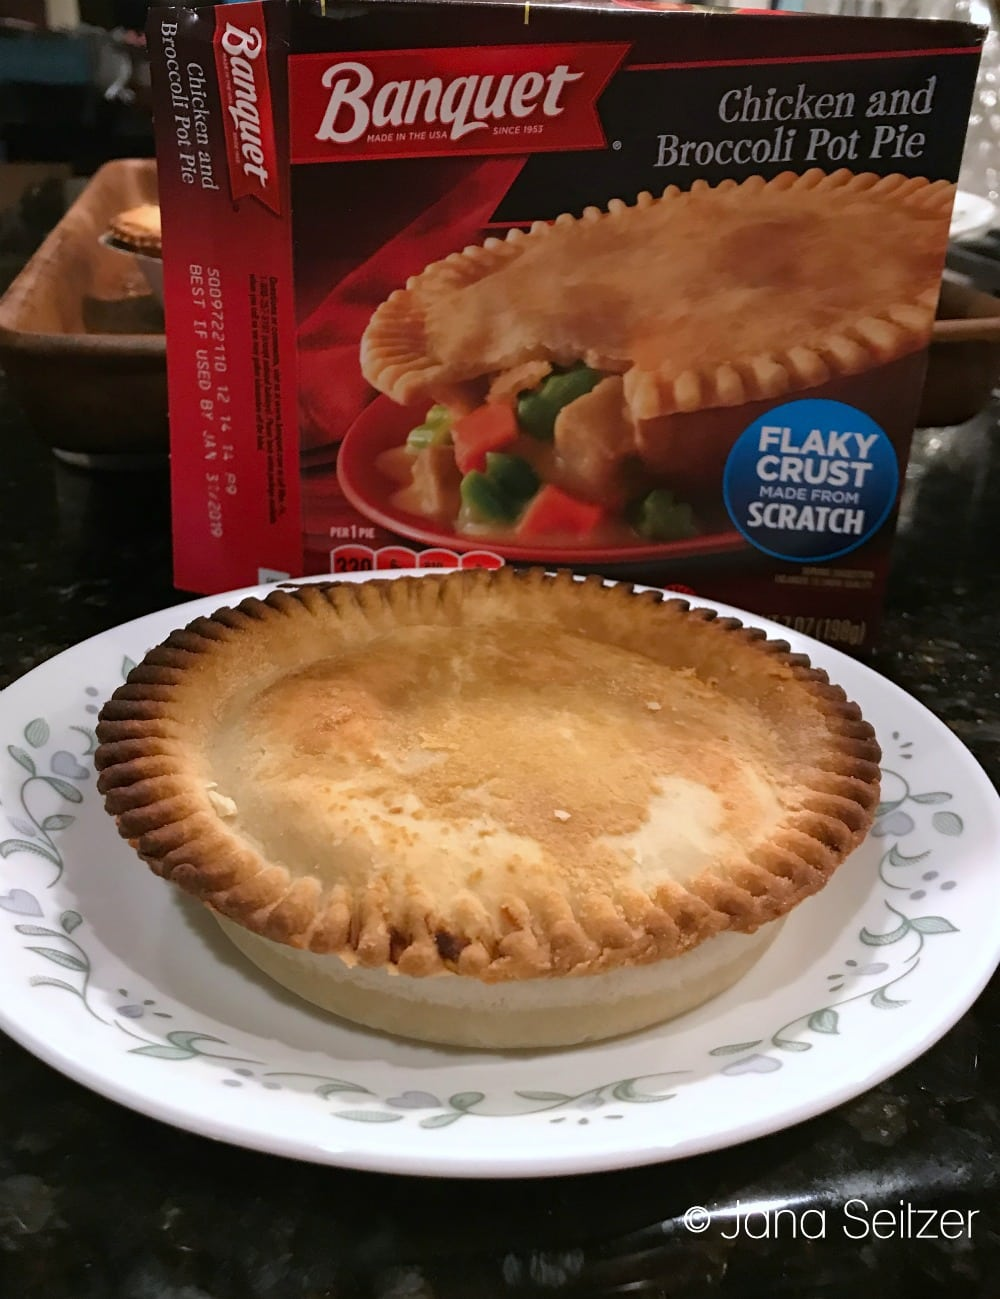 Celebrate Fall with Banquet Pot Pies